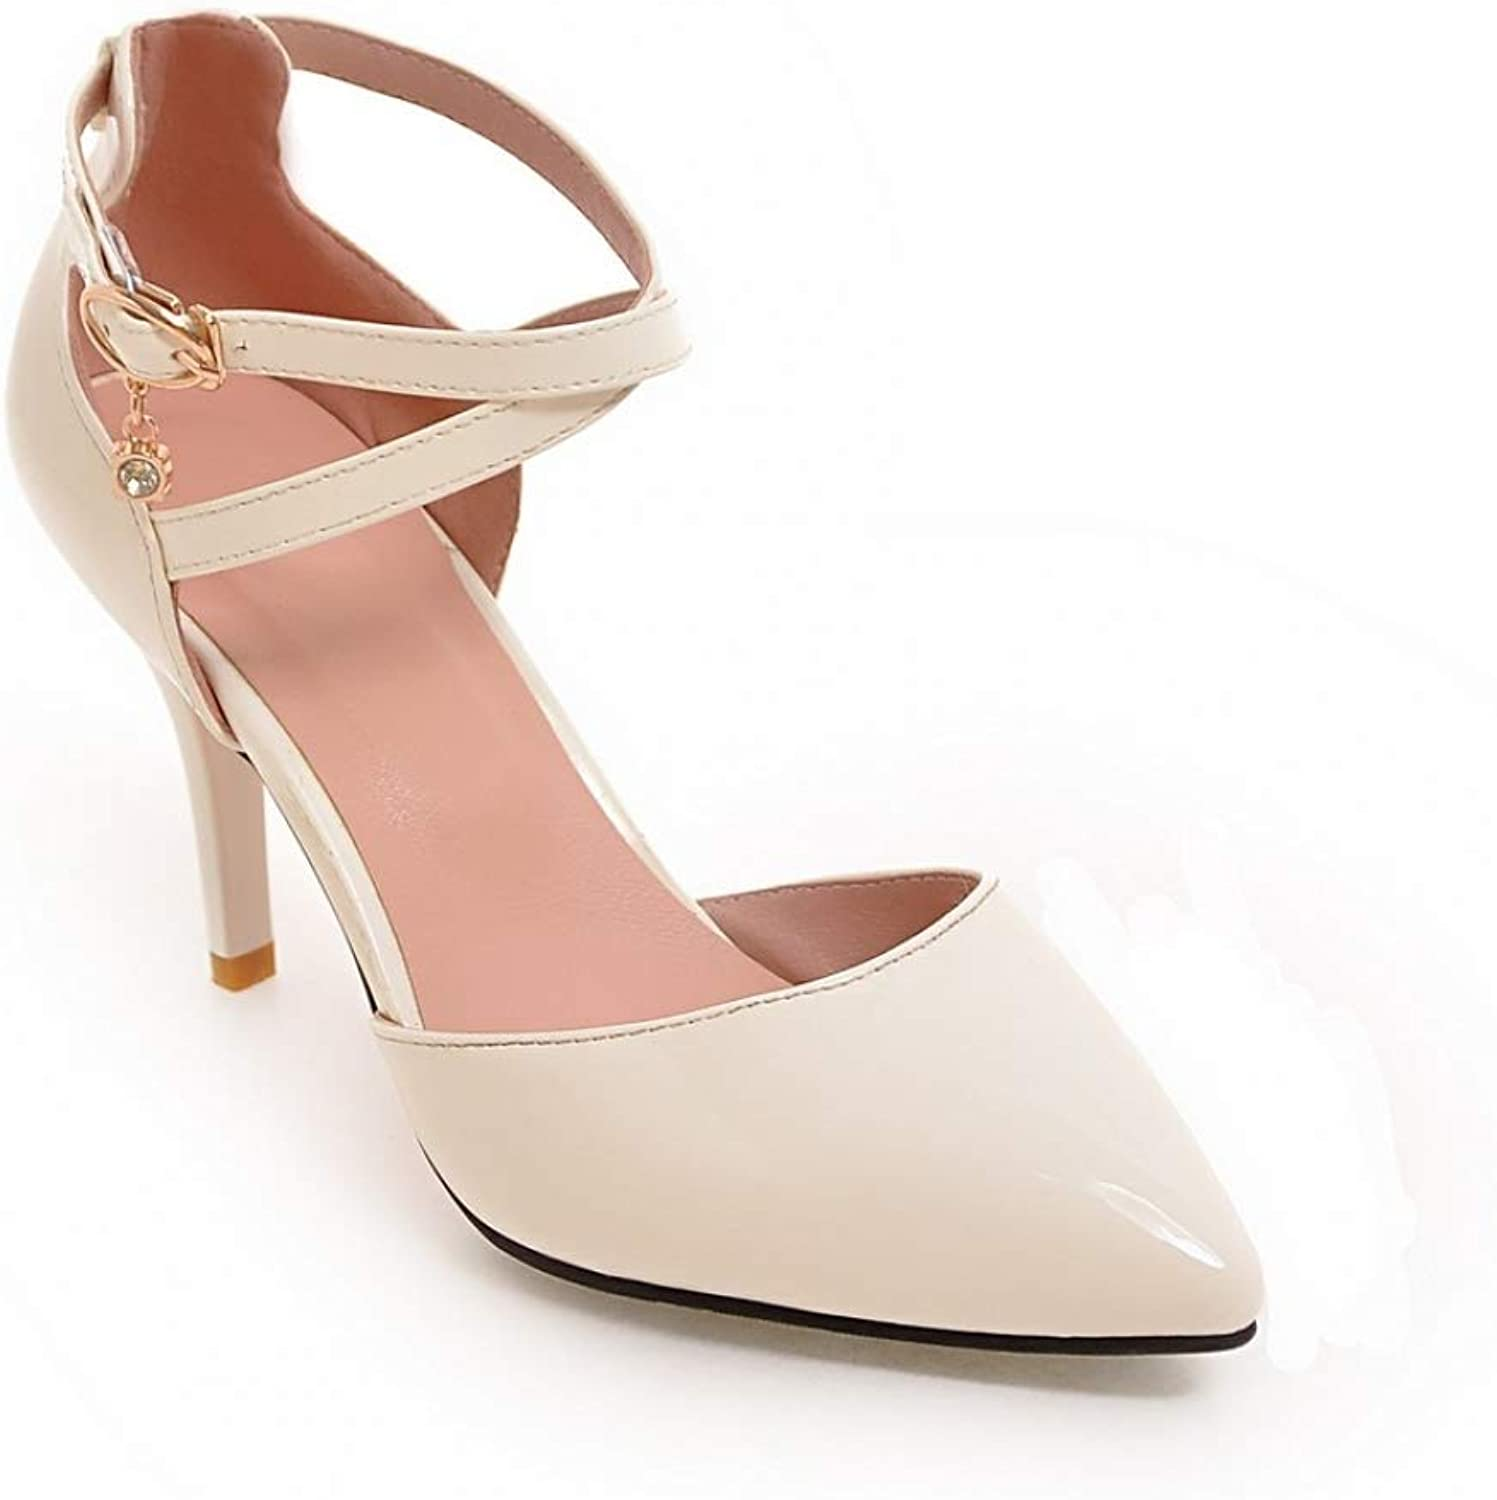 Women Thin High Heels Sandal Summer Shallow Ankle Buckle Wedding shoes Elegant Ladies Sandals